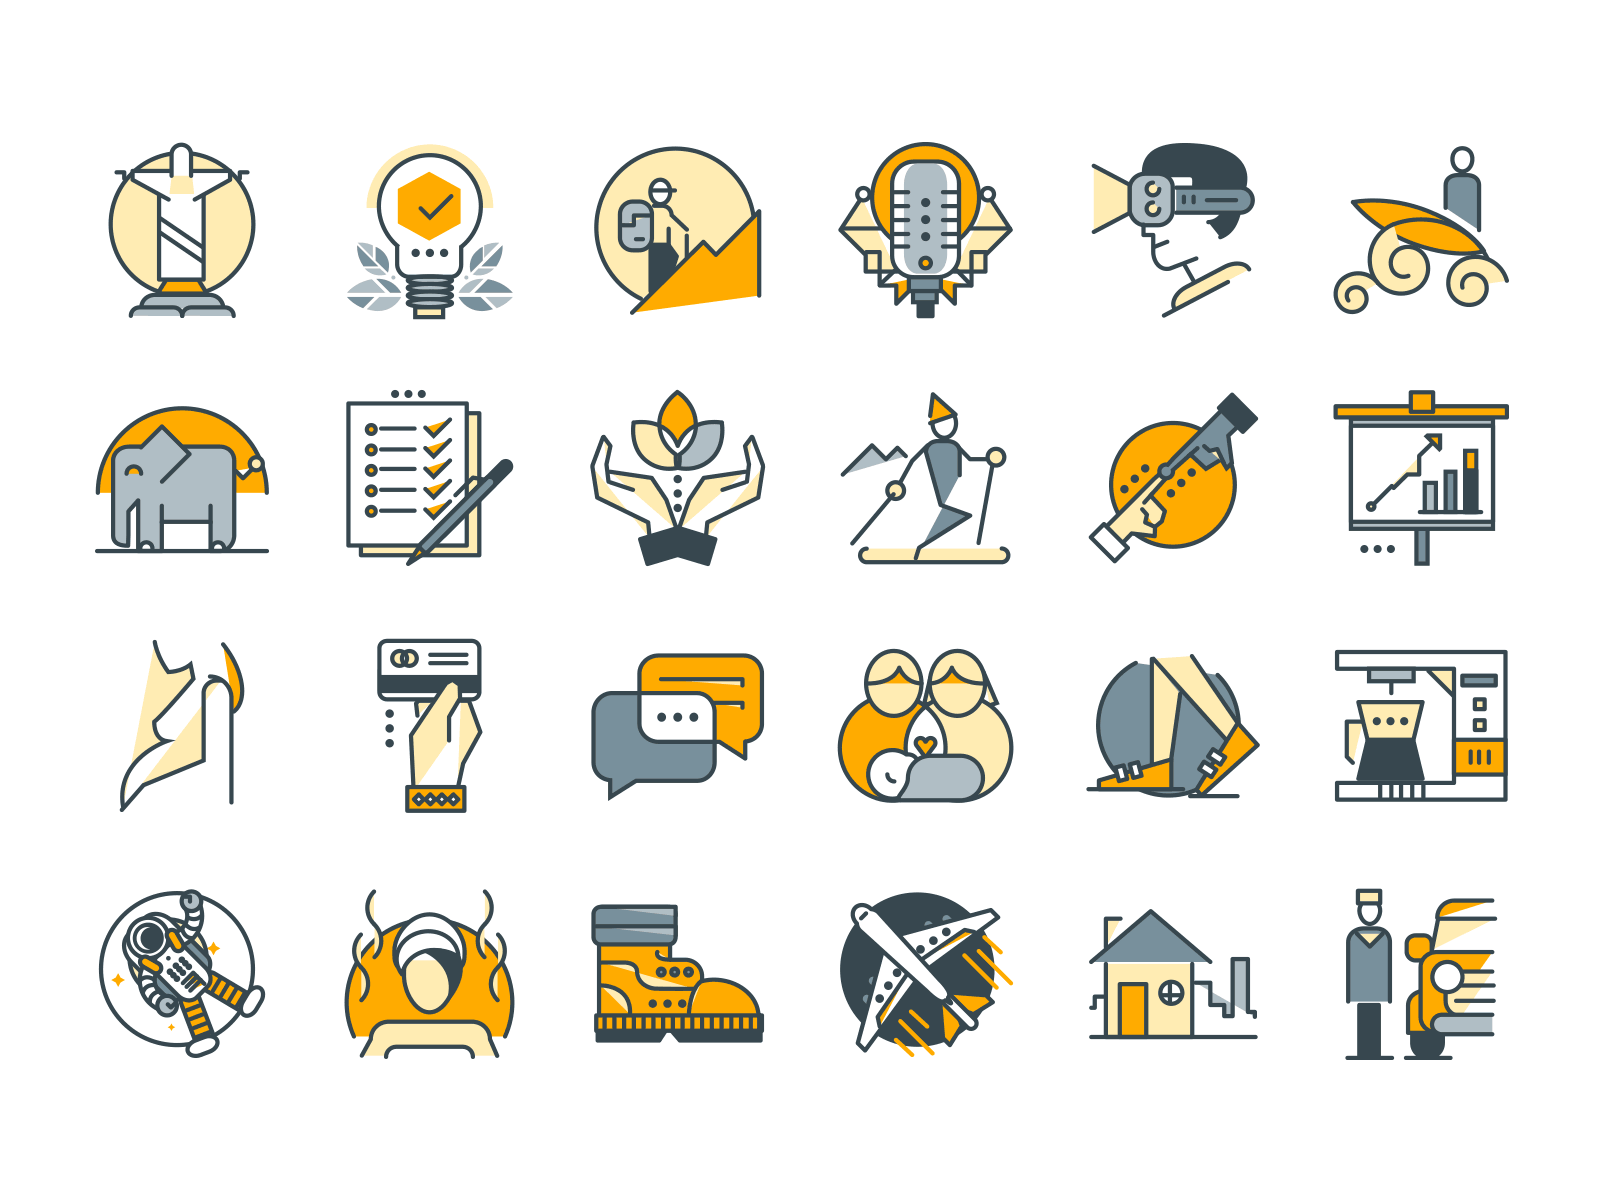 vector Filled outline icons pack